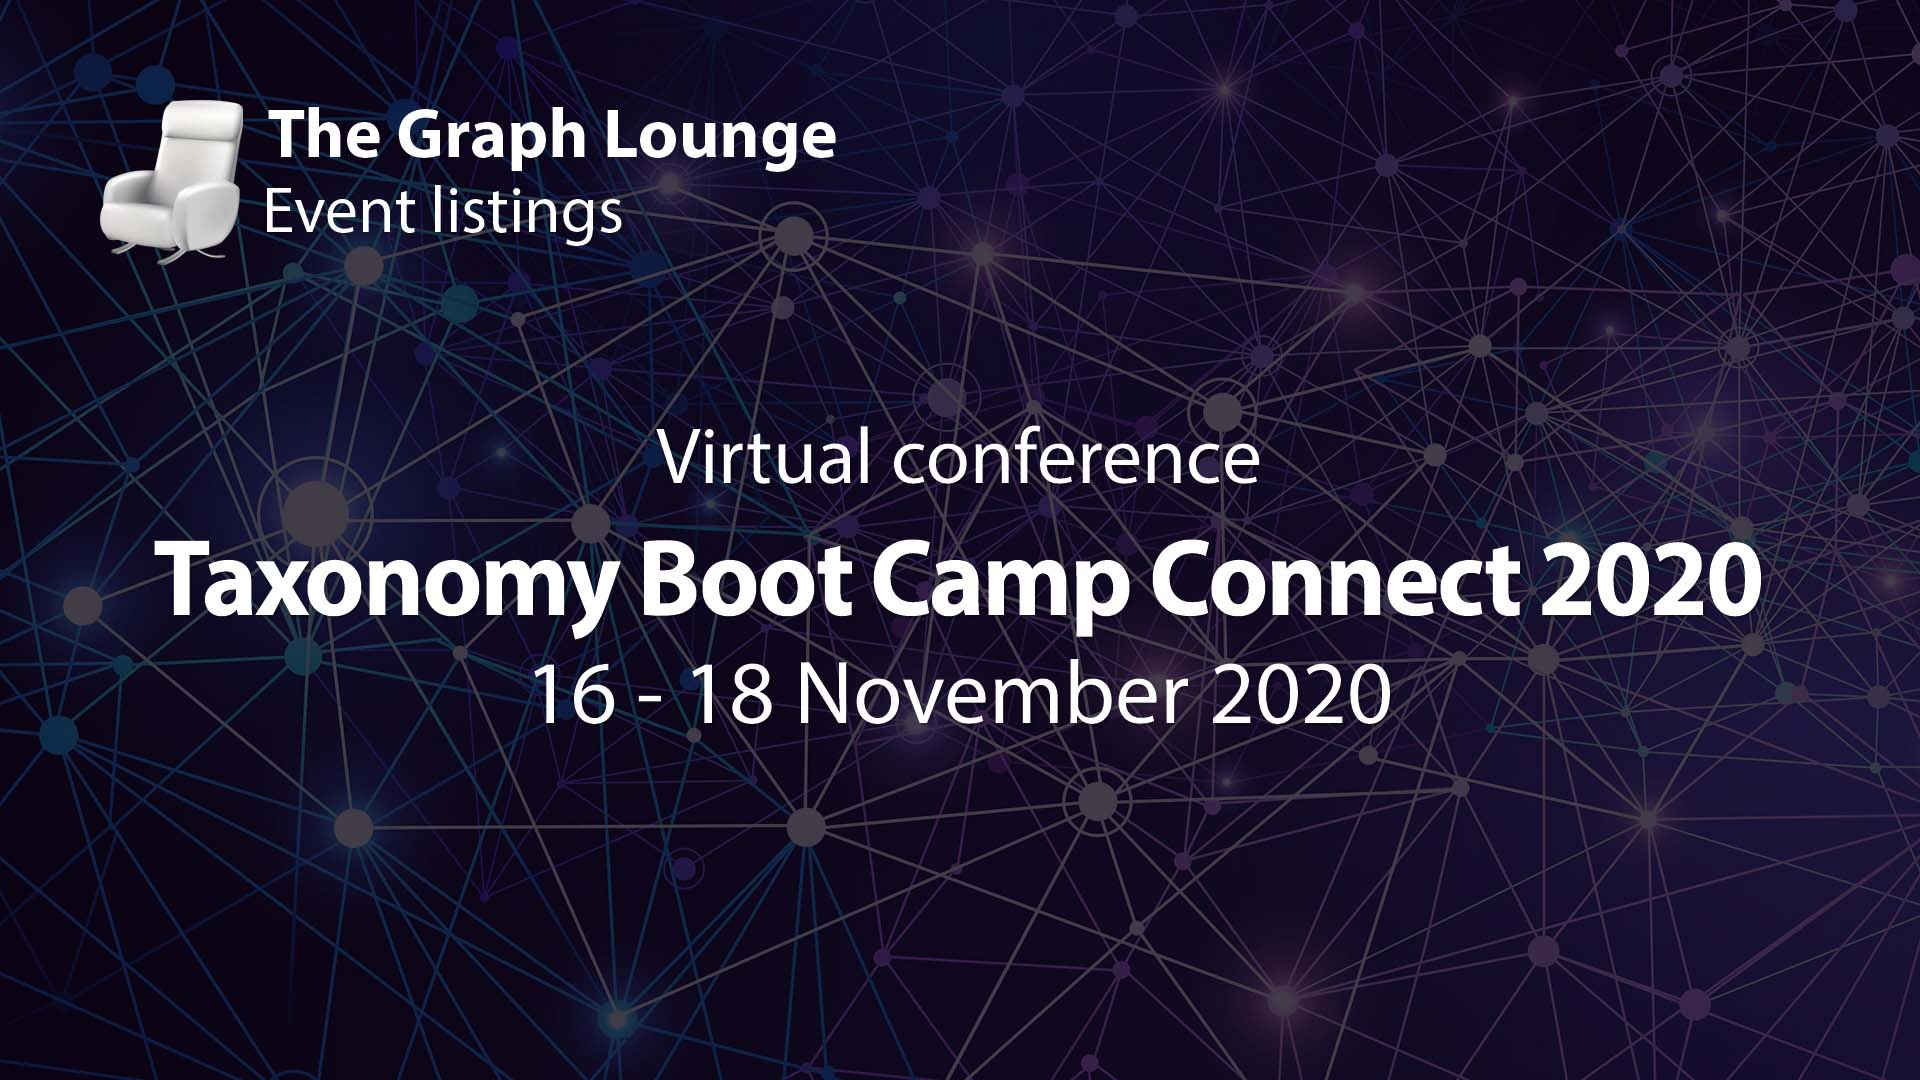 Taxonomy Boot Camp Connect 2020